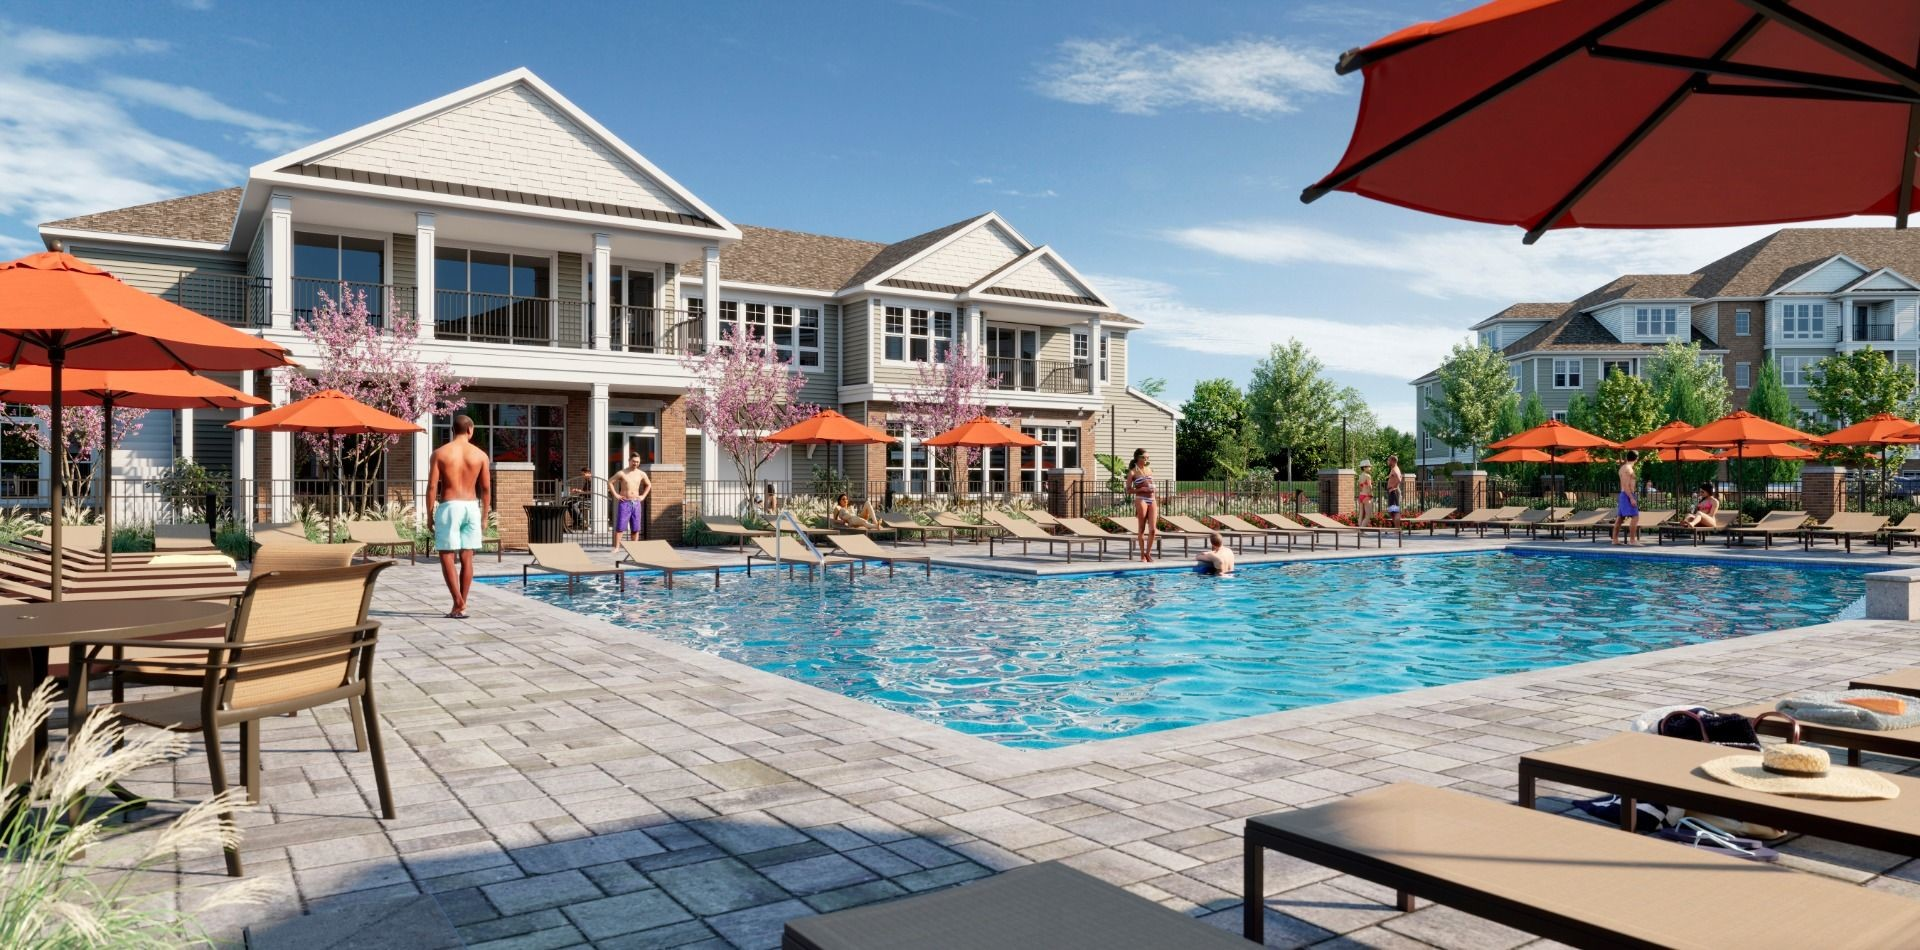 Rendering of swimming pool with seating